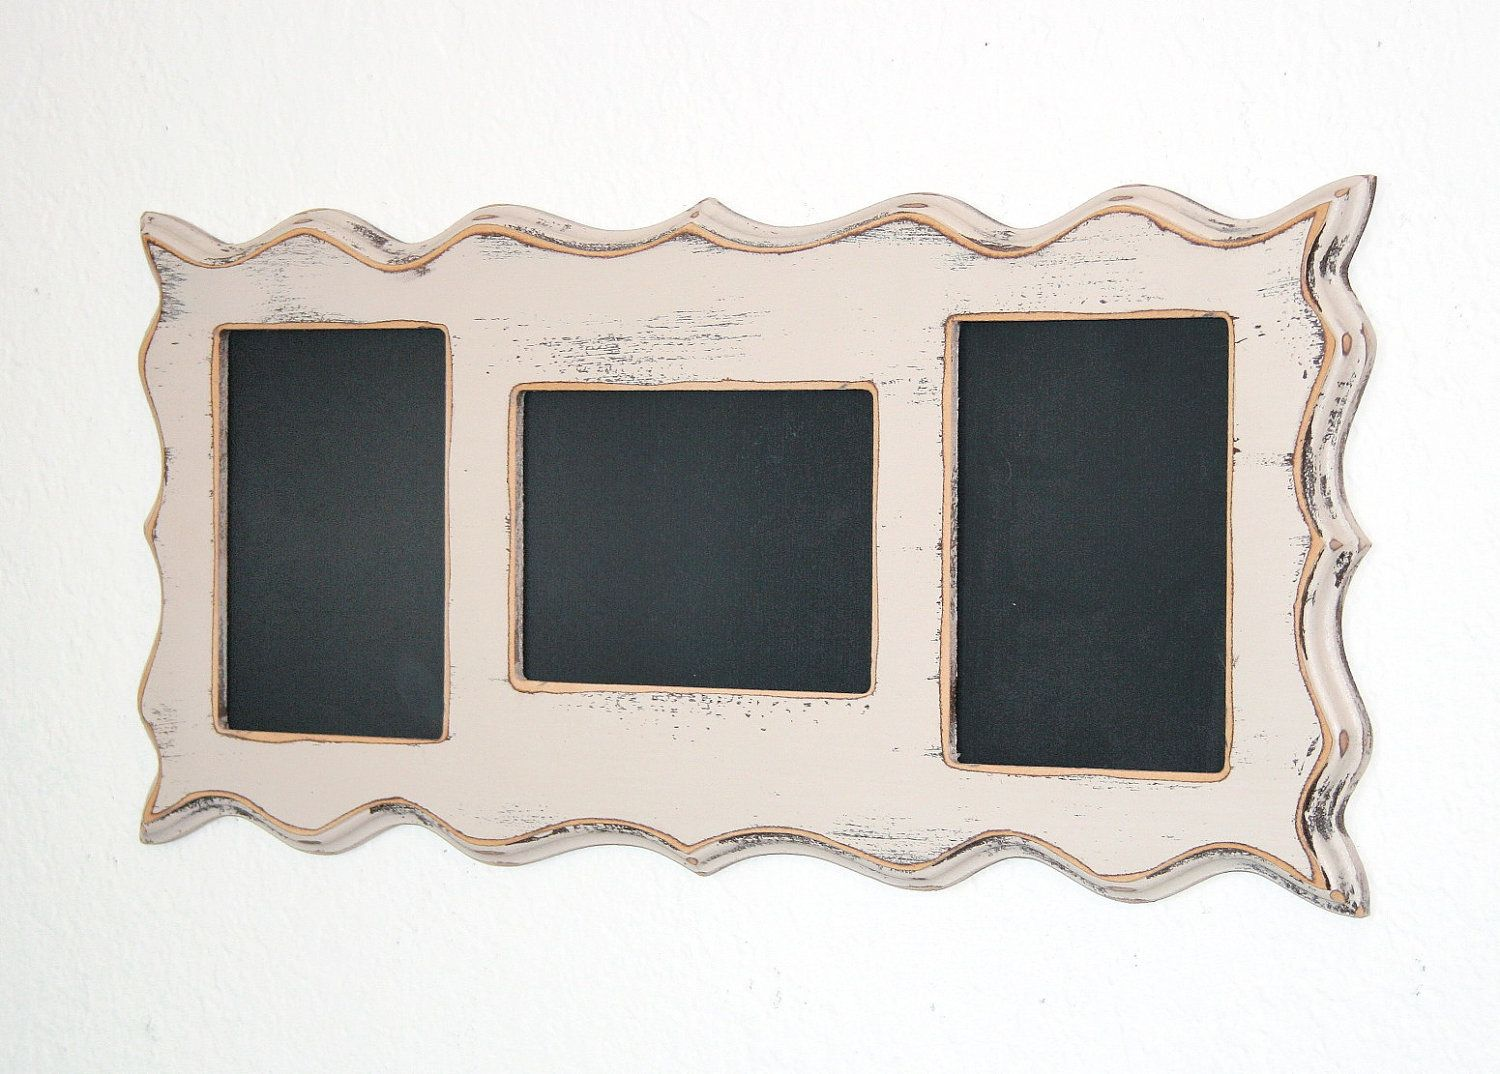 Collage whimsical picture frame multi opening 3 4x6 or 5x7 collage whimsical picture frame multi opening 3 4x6 or 5x7 openings multiple shabby whimsical story jeuxipadfo Images